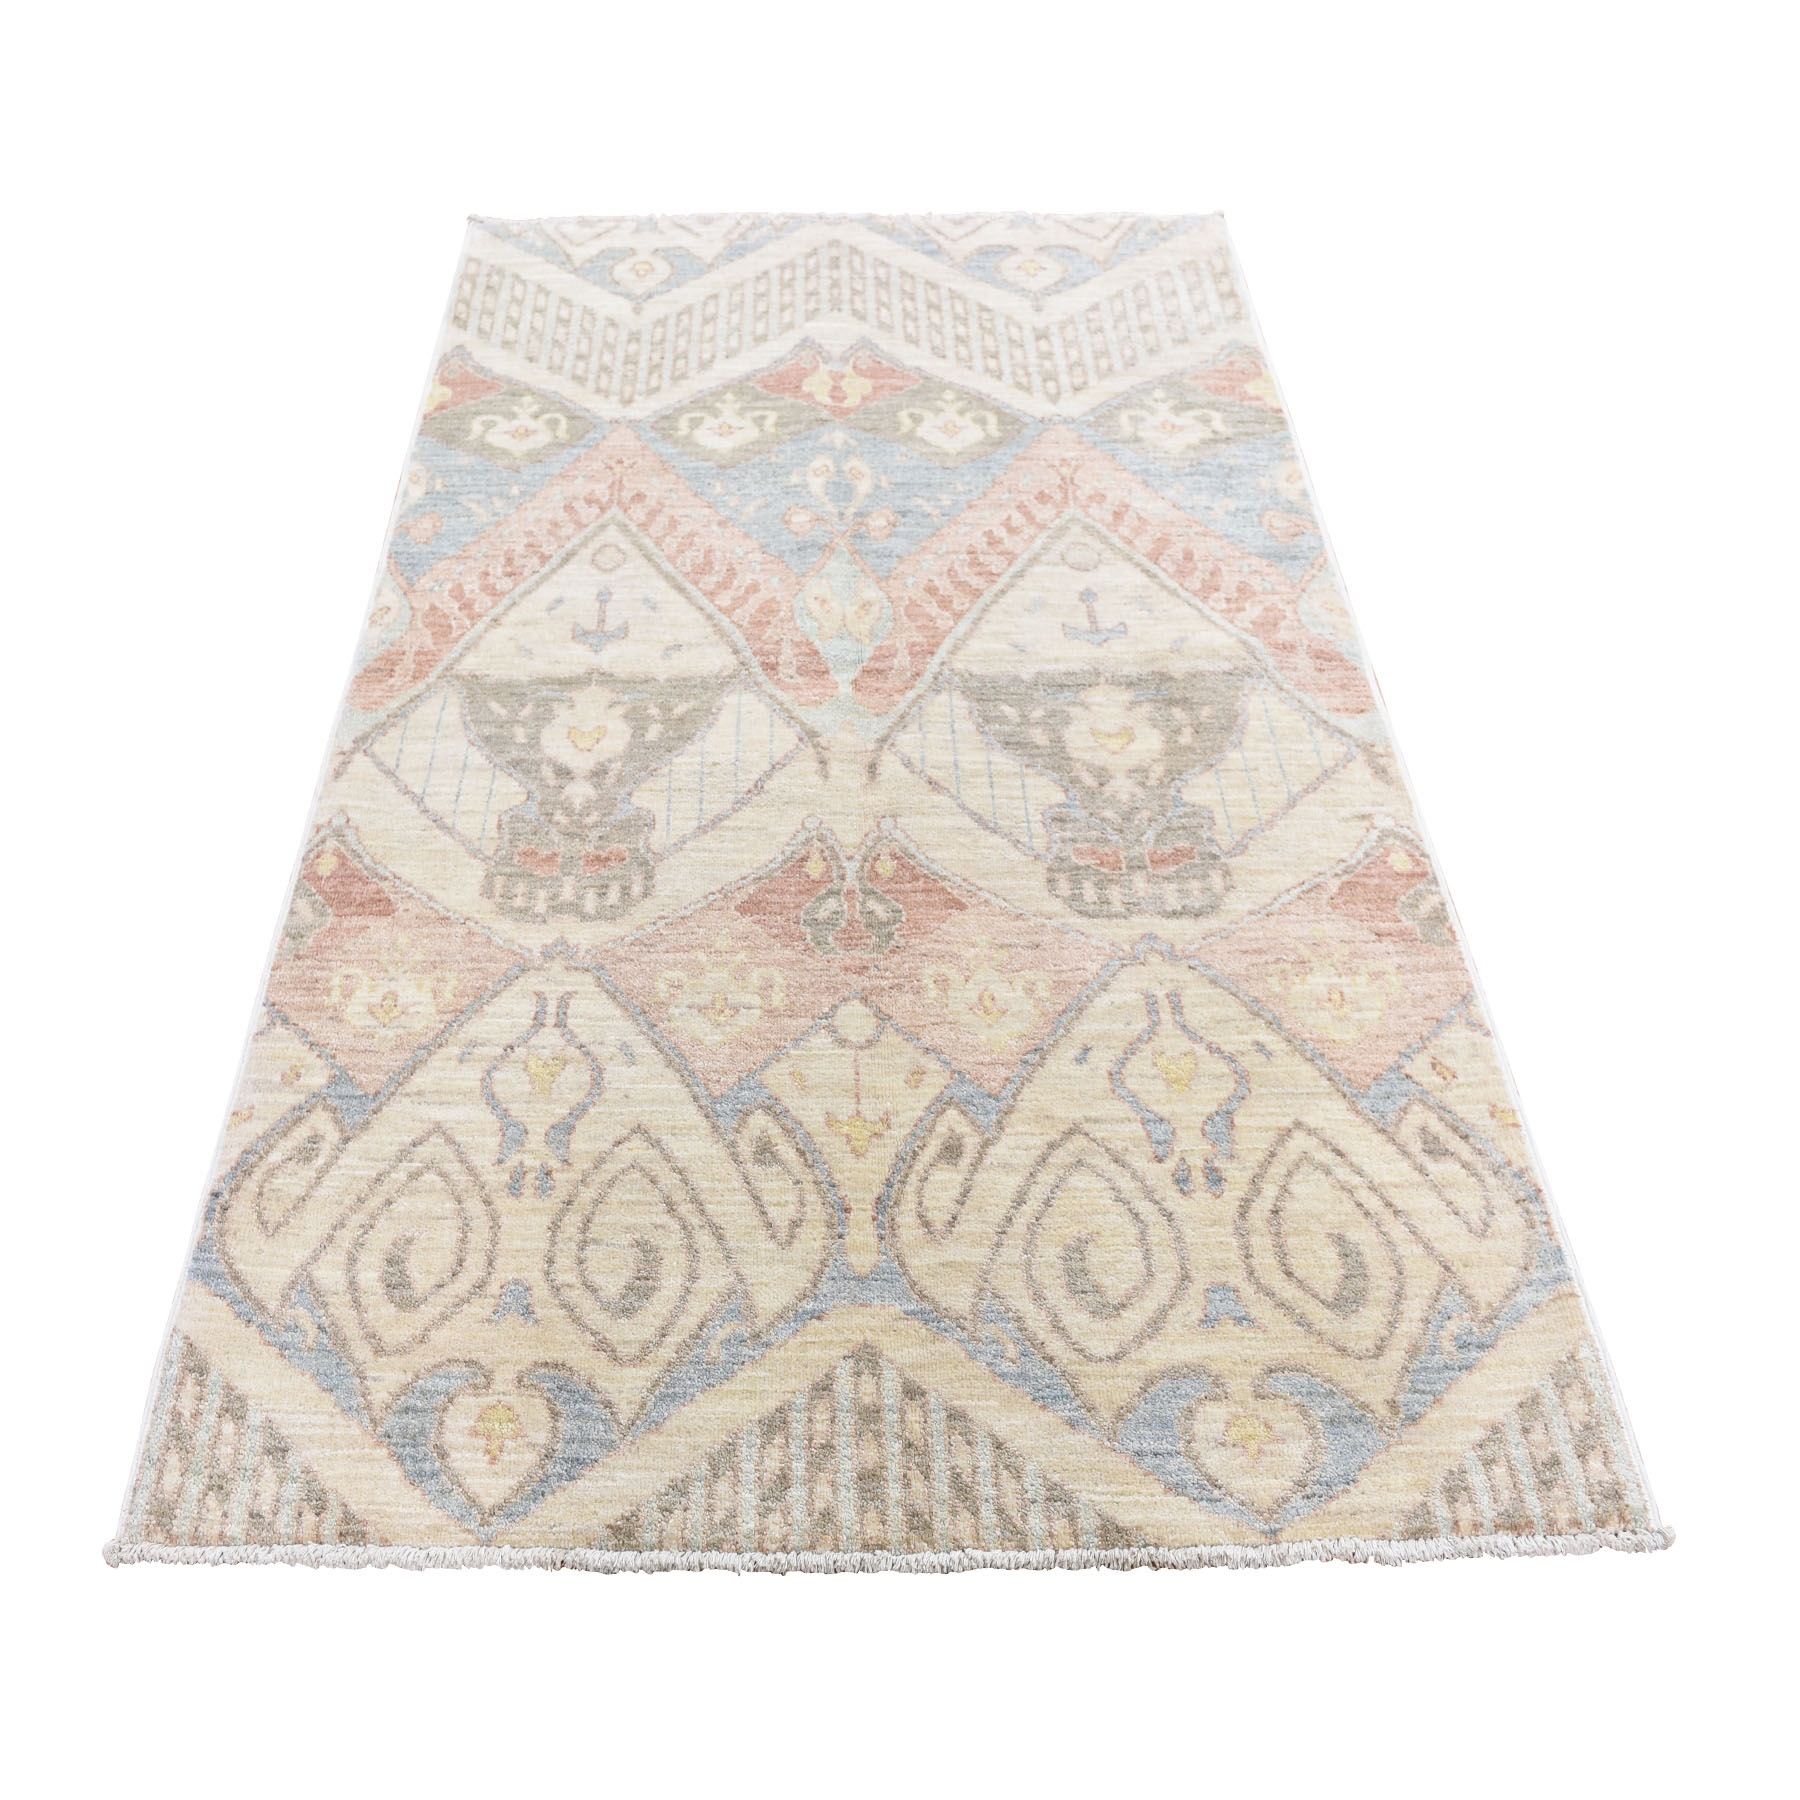 ikat and suzani design rugs LUV423378